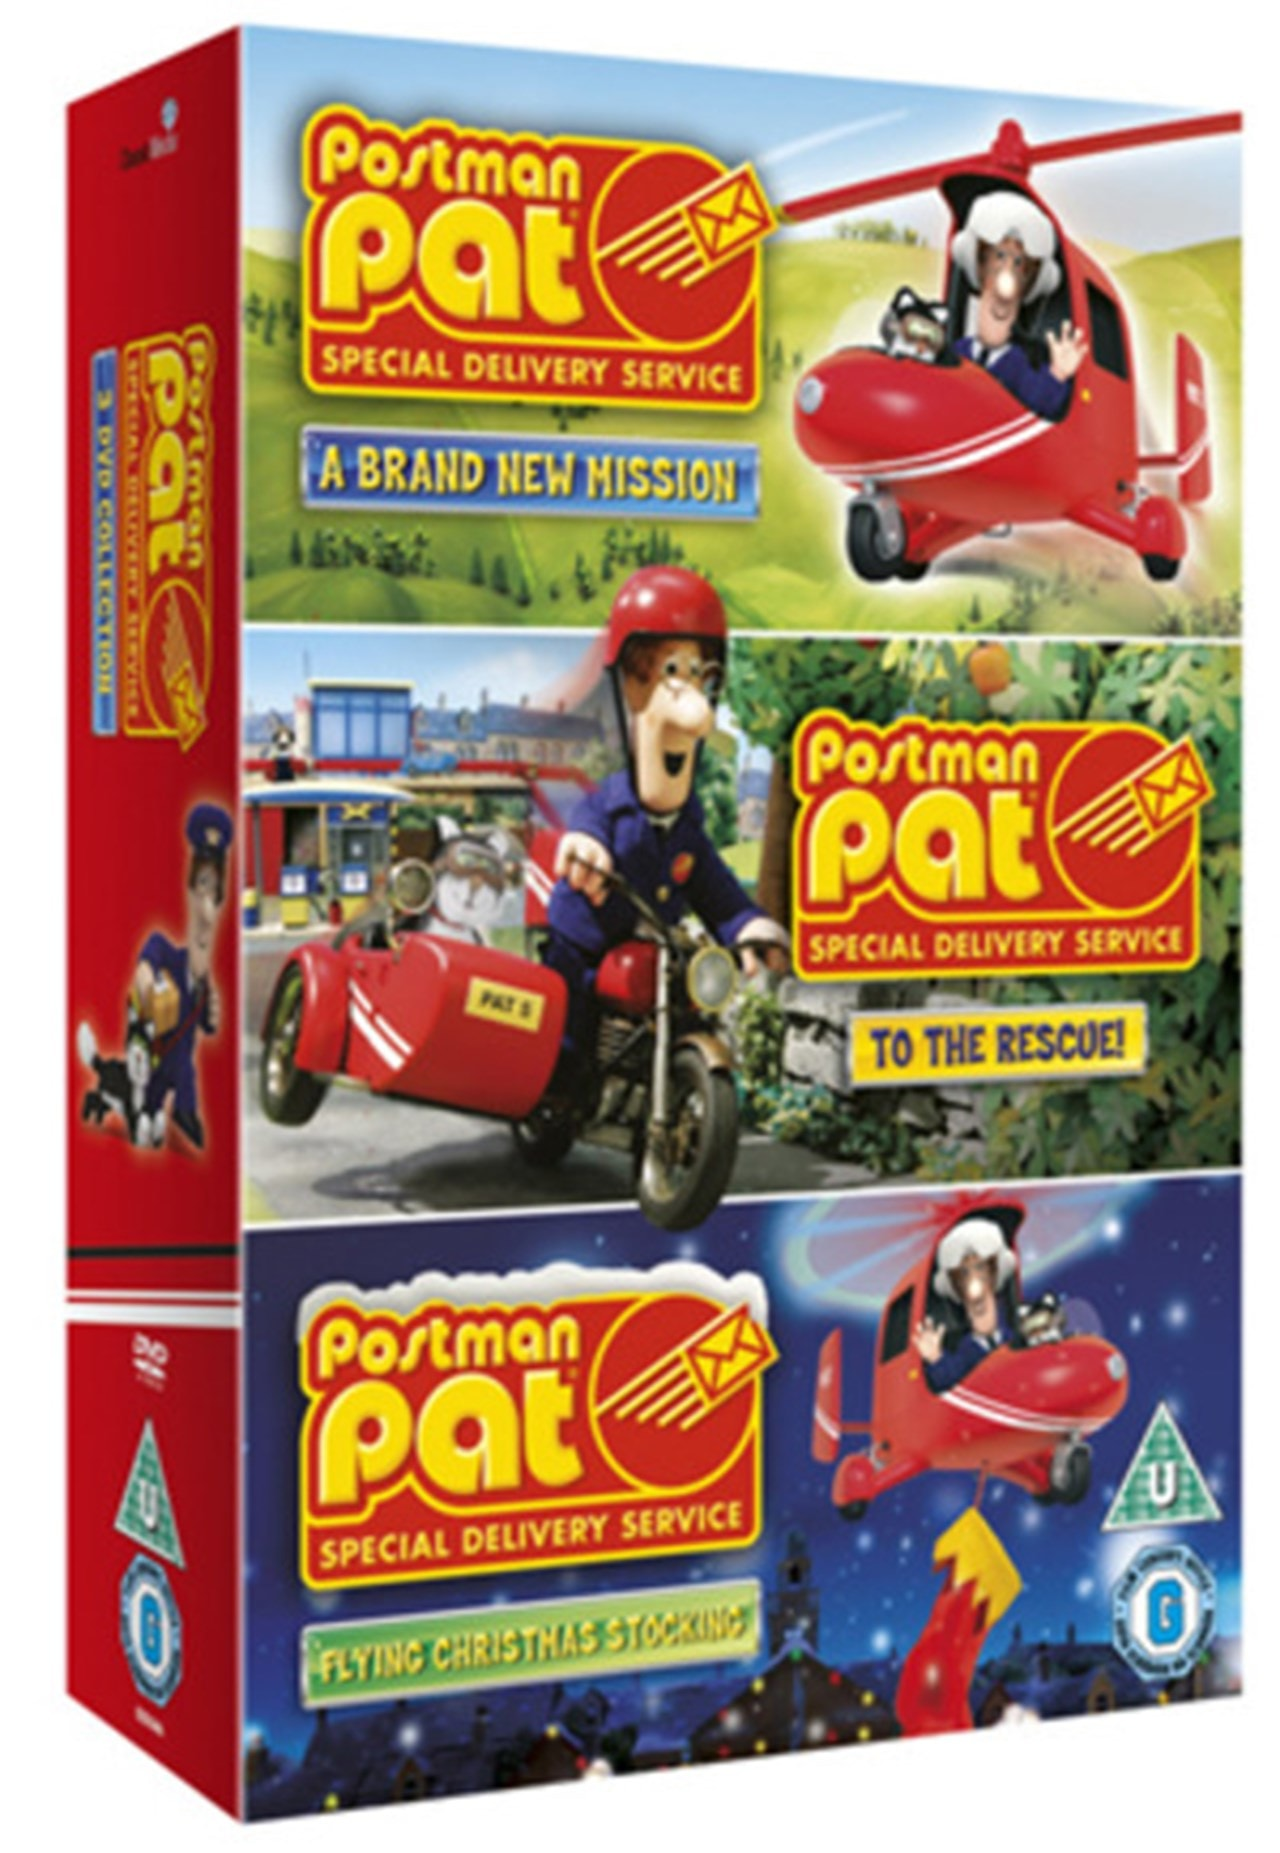 Postman Pat - Special Delivery Service: Collection - 1